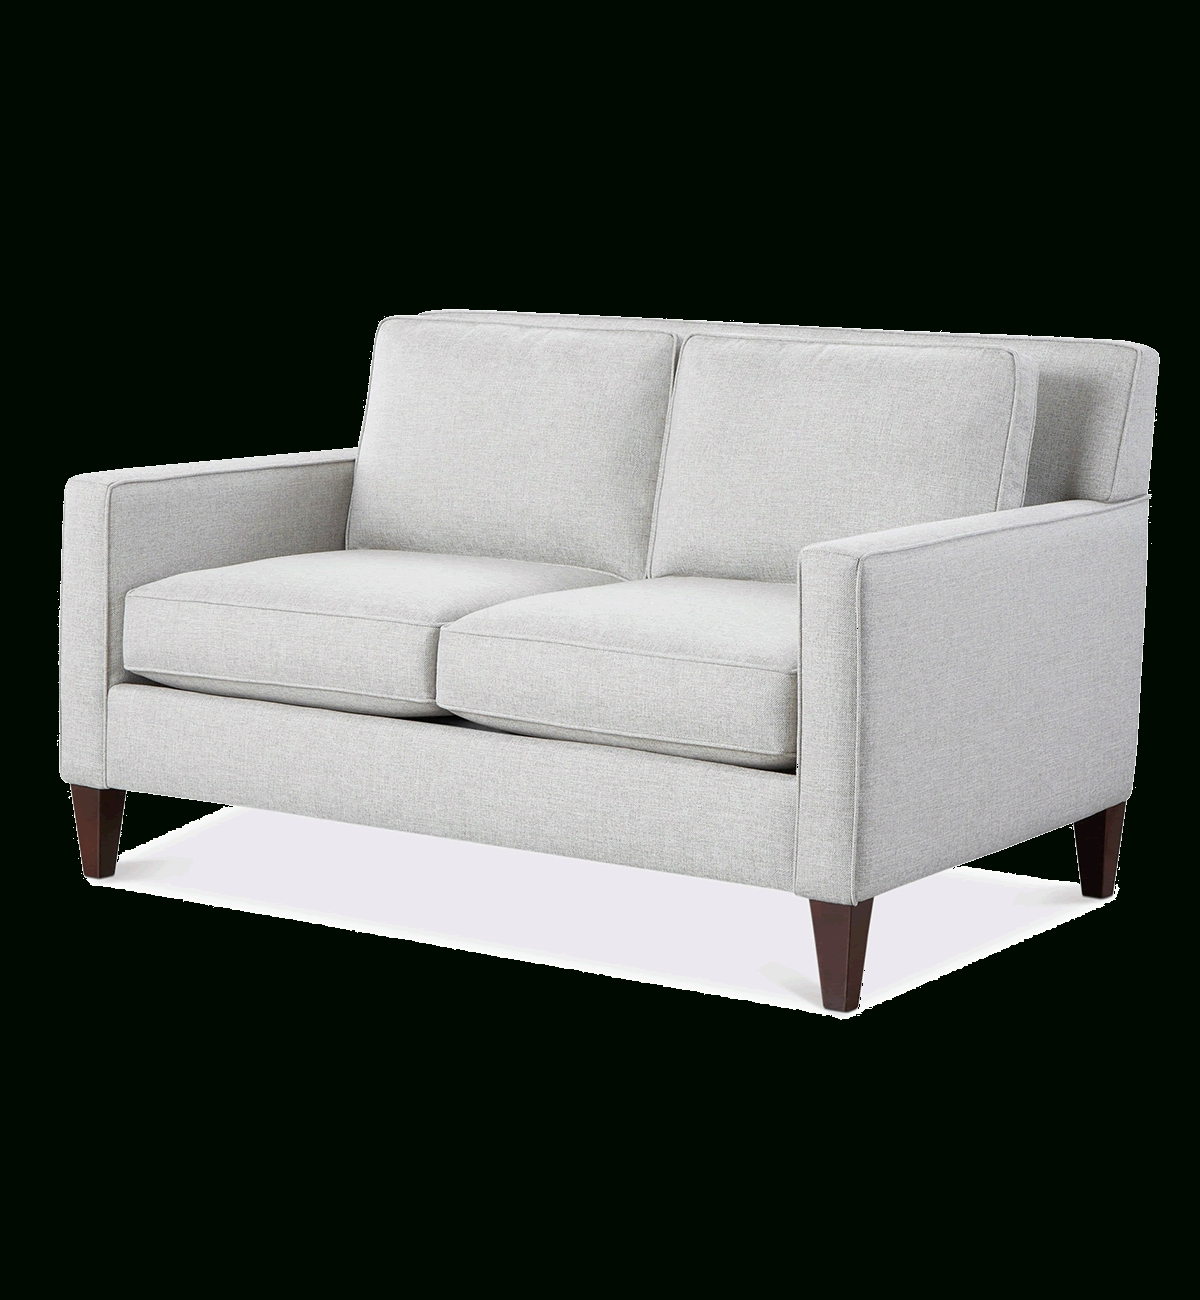 Sectional Sofas Couches And Sofas – Macy's With 2018 Macys Sectional Sofas (View 15 of 15)